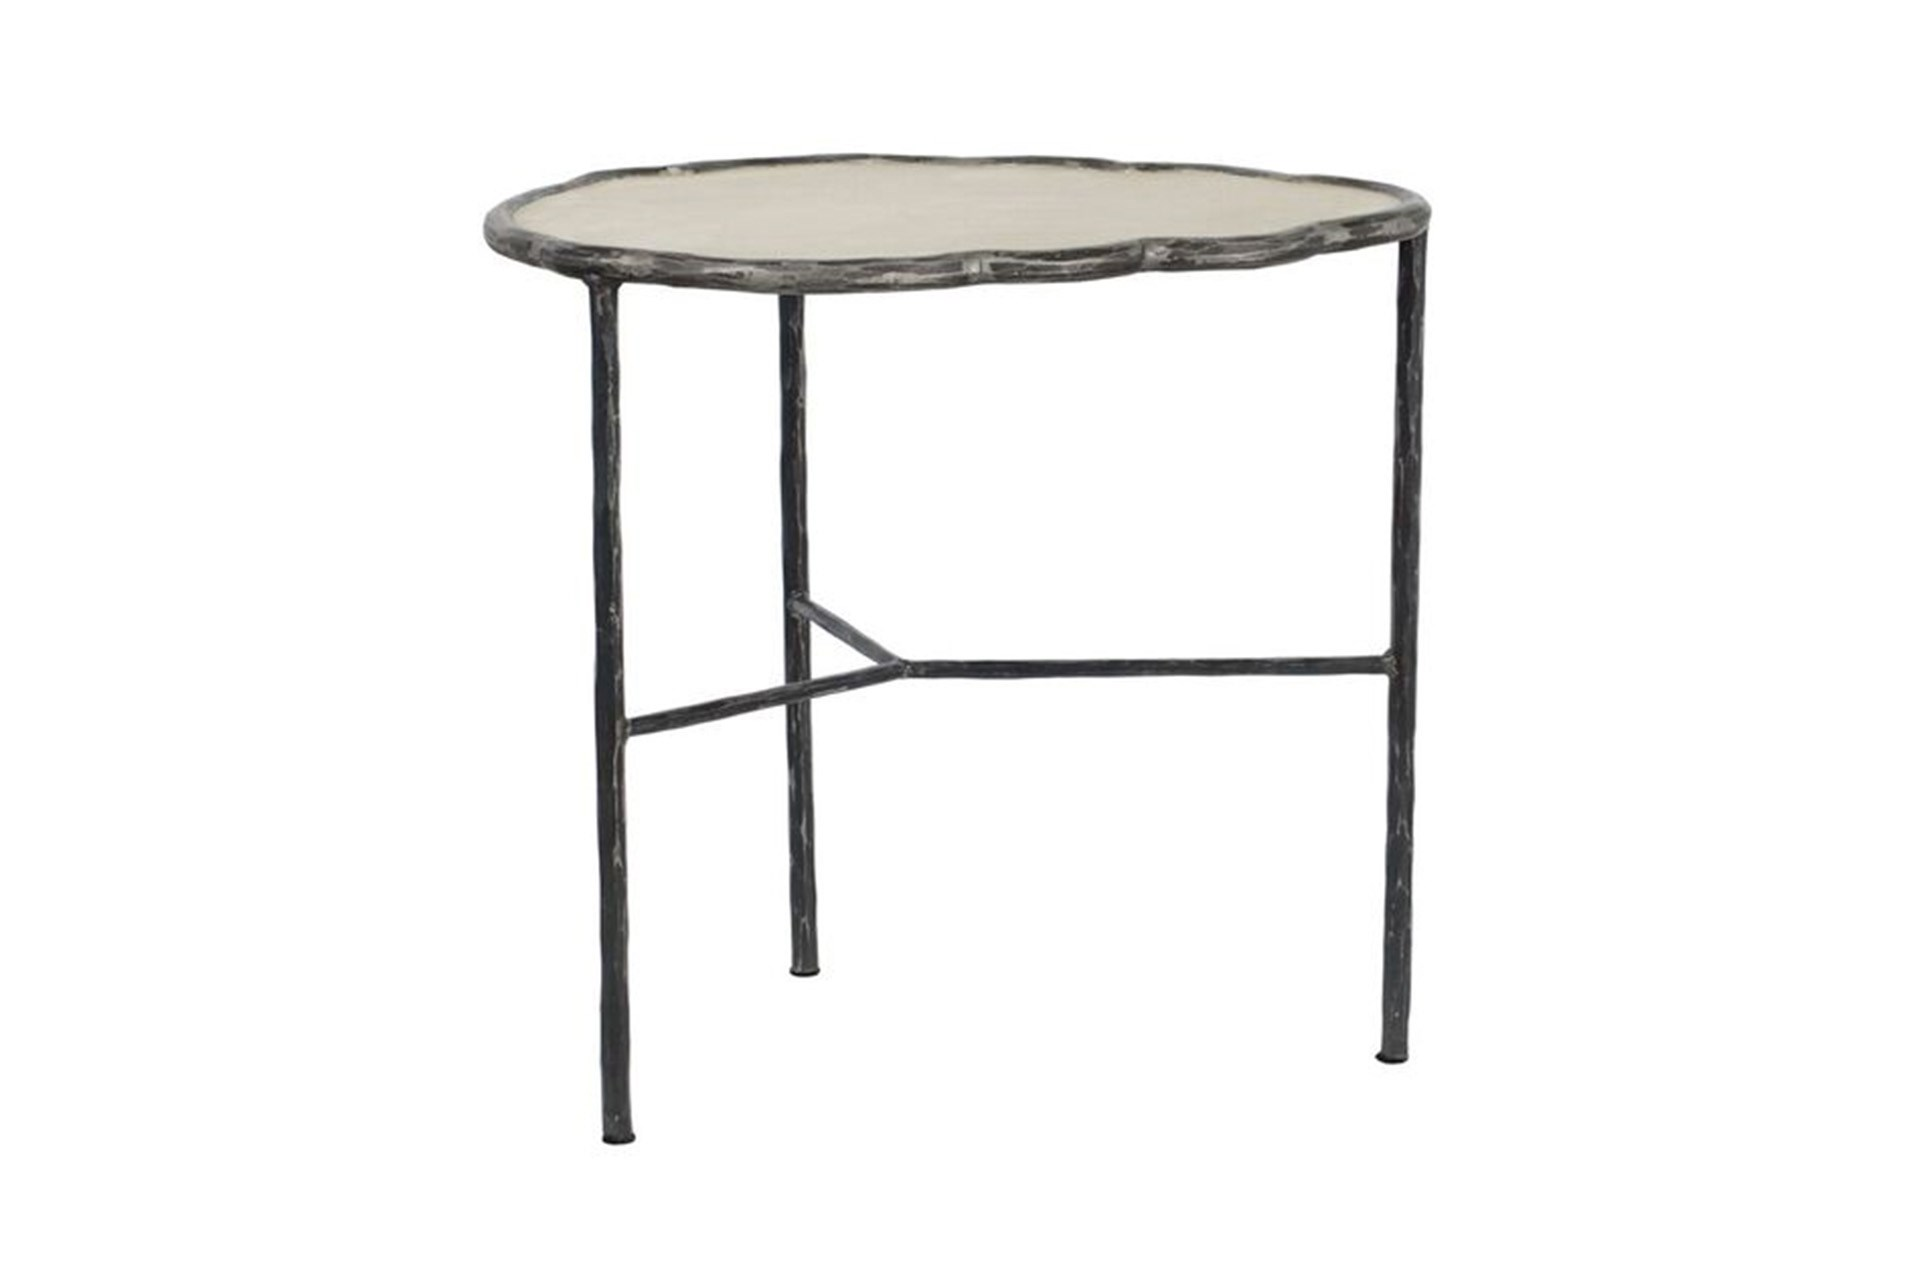 cast iron cement accent table living spaces white multimedia metal nate berkus amp qty has been successfully your cart thin side ikea console with drawers big cloth brown end